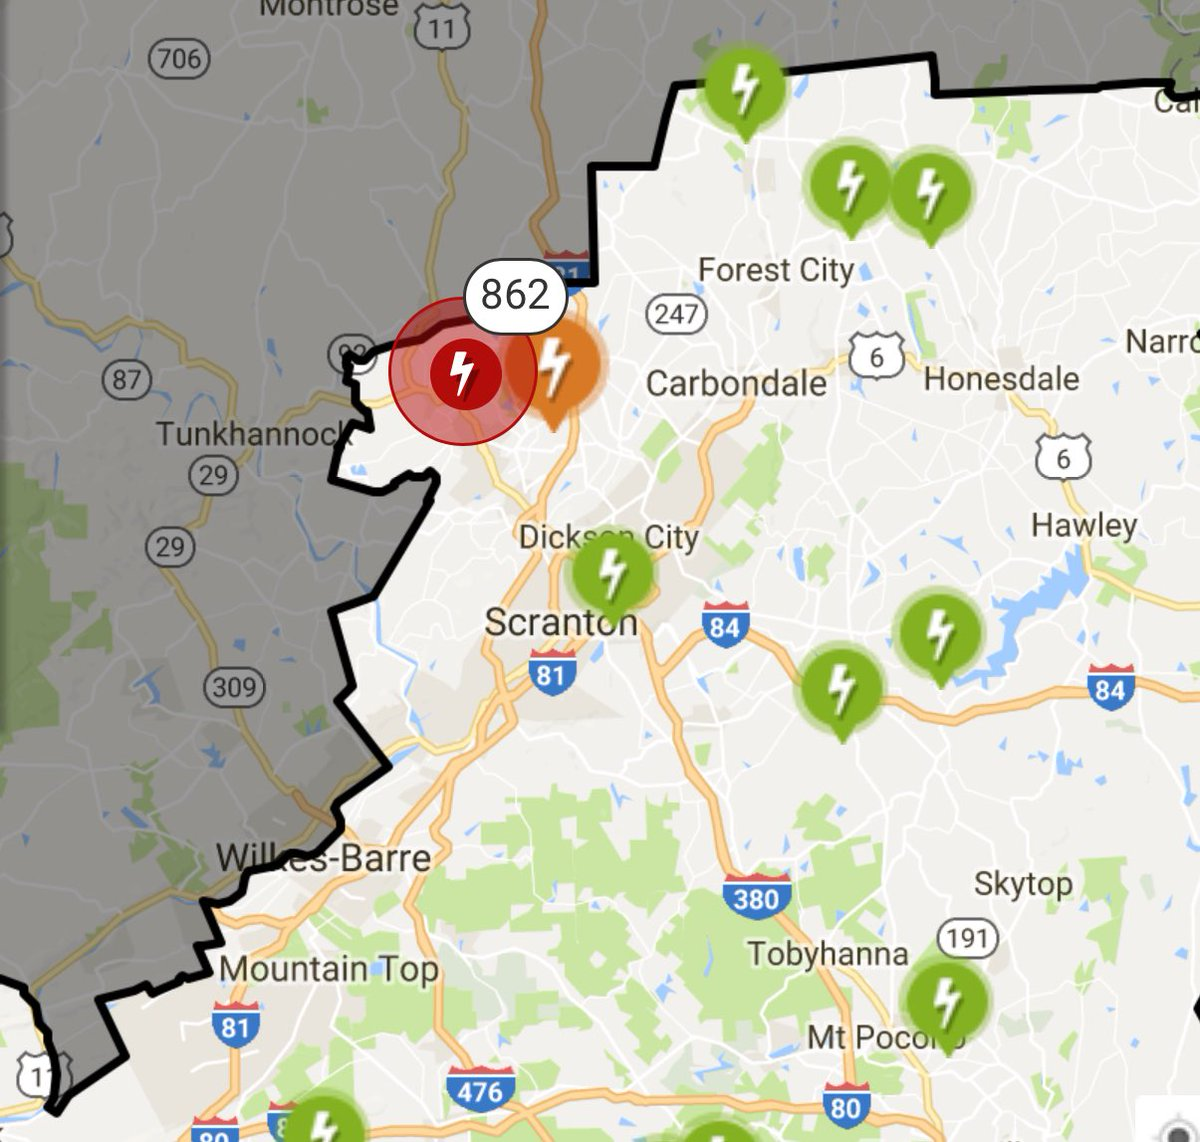 Ppl Power Outage Map Eric Deabill on Twitter: